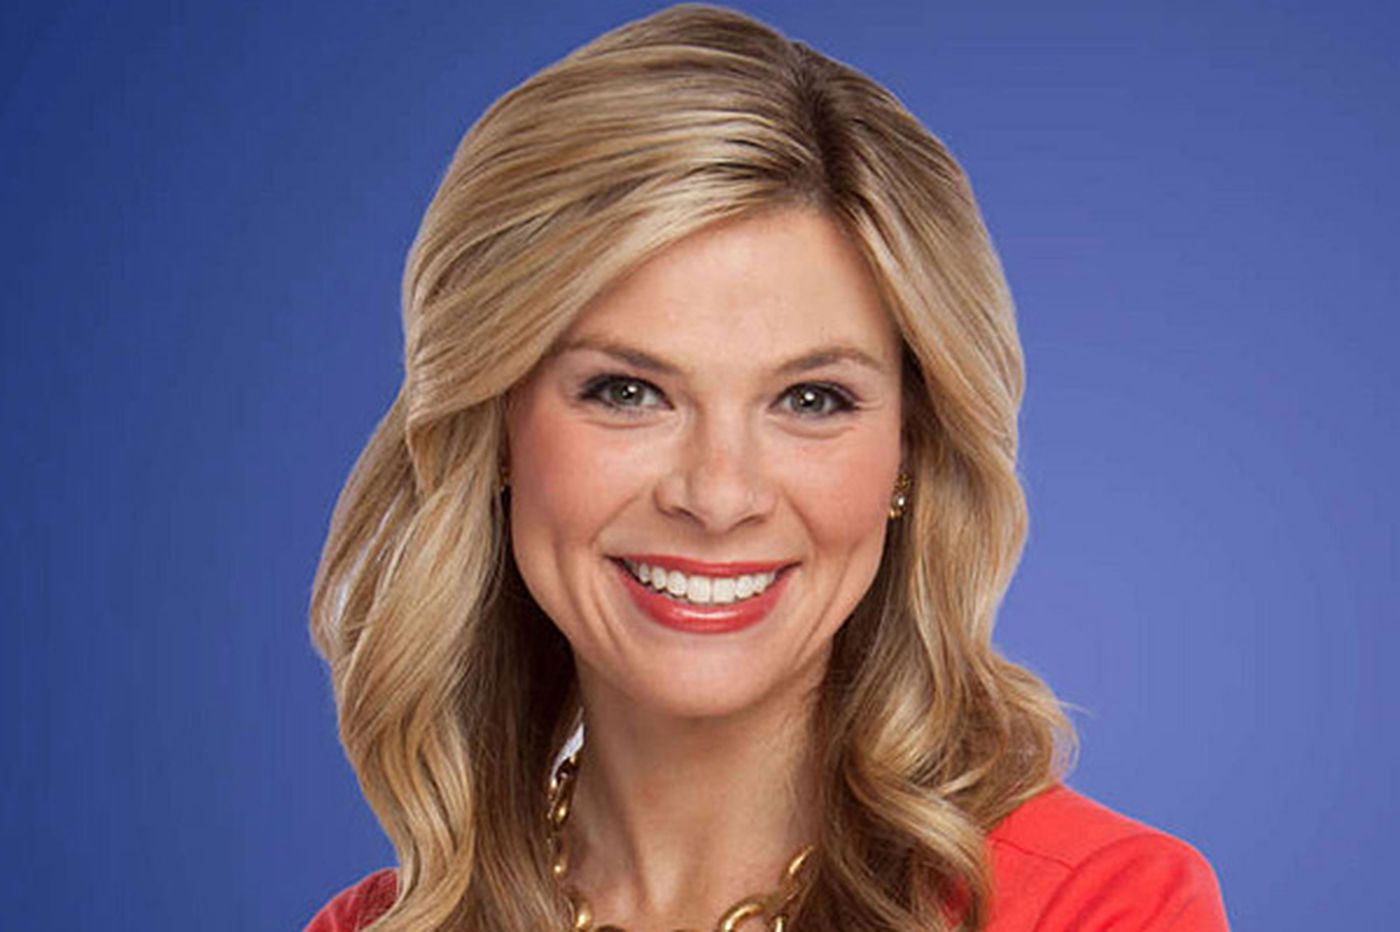 Jessica Dean is CBS3's new weeknight anchor; Dykstra goes out to the ballgame